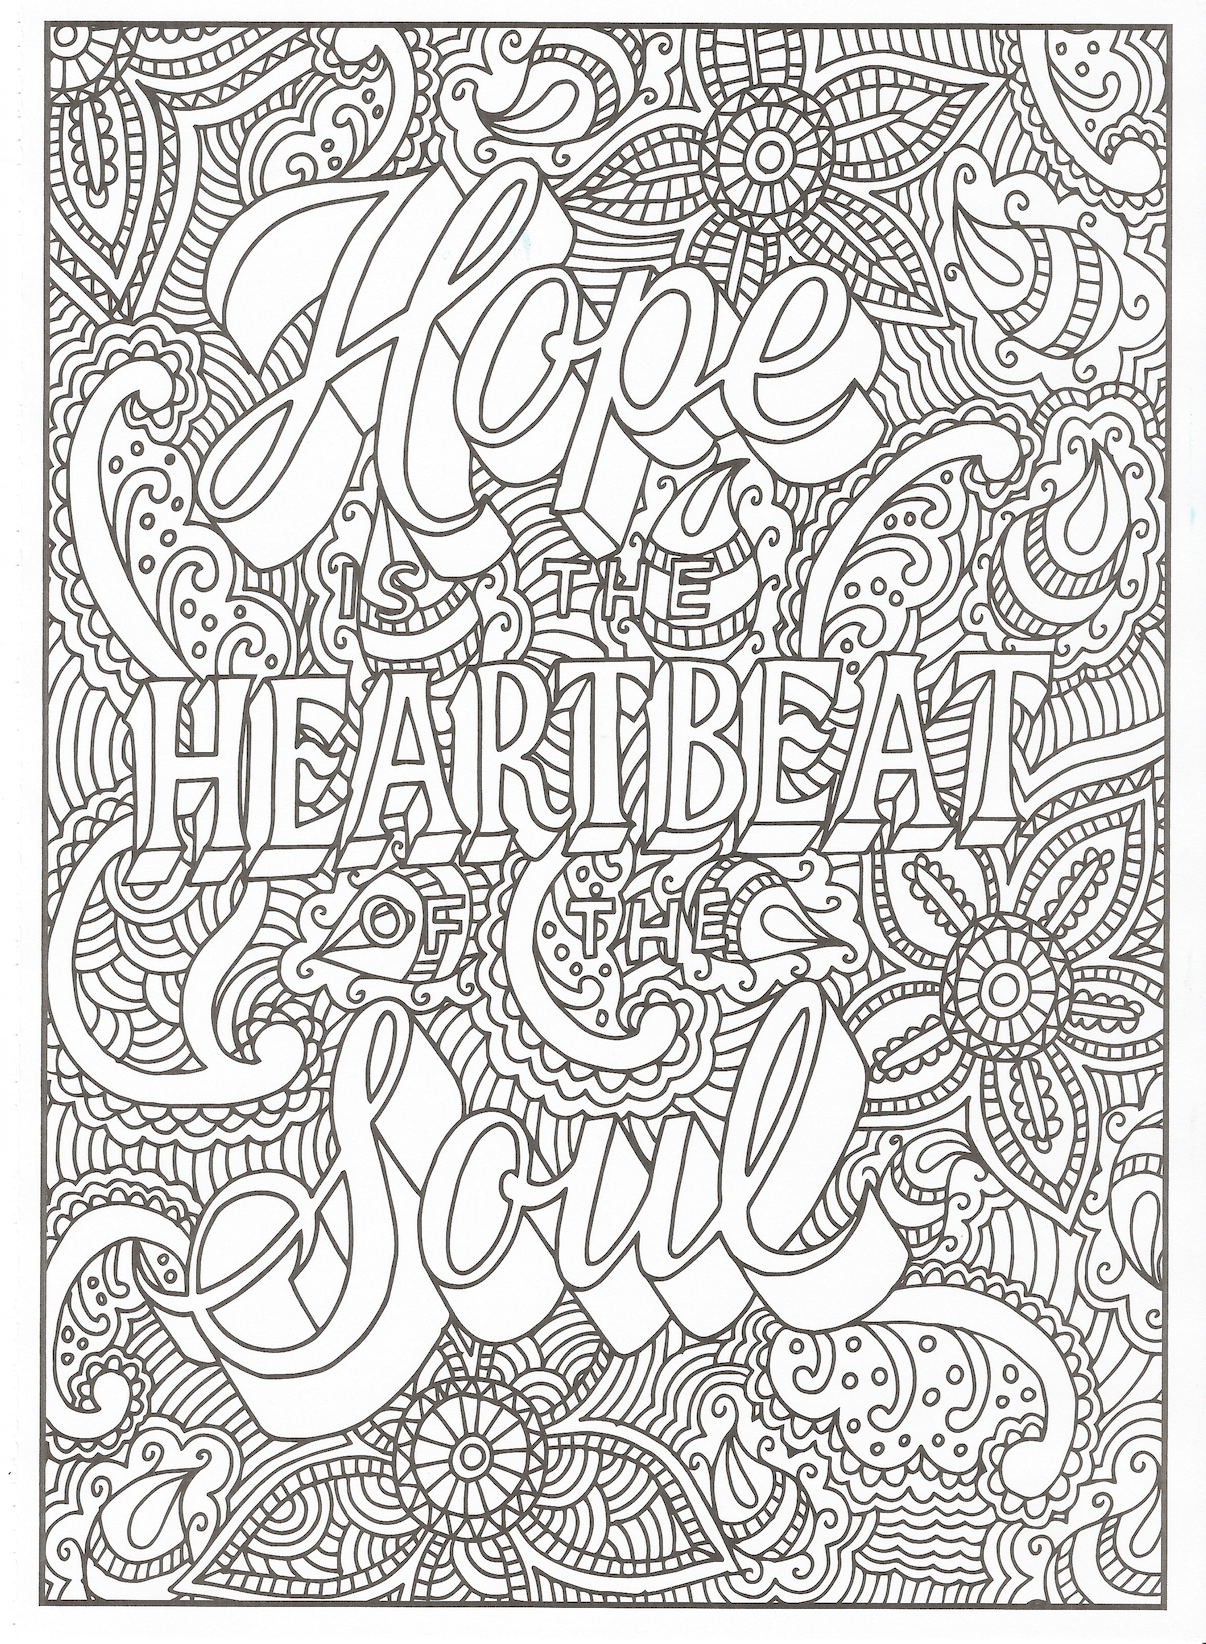 Timeless Creations Creative Quotes Coloring Page Hope Is Creation Coloring Pages Quote Coloring Pages Coloring Pages